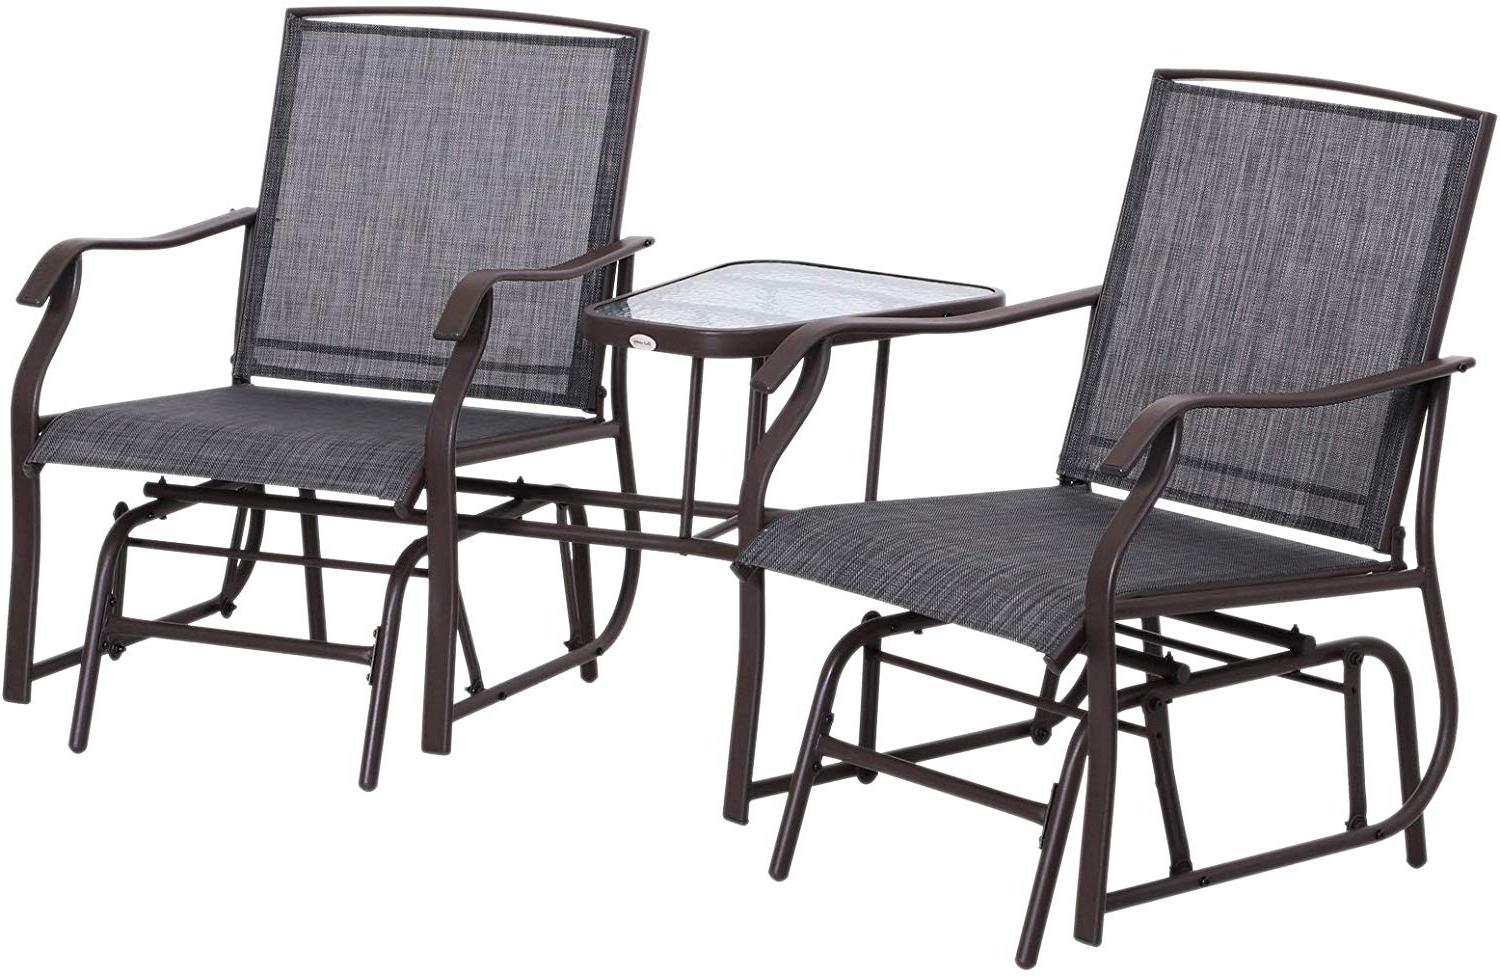 Best And Newest Outsunny Durable Double Glider Chair W/center Table Outdoor Comfortable  High Back Armchair Set Sling Fabric Garden Bench W/glass Top Table Grey With Center Table Double Glider Benches (Gallery 9 of 30)